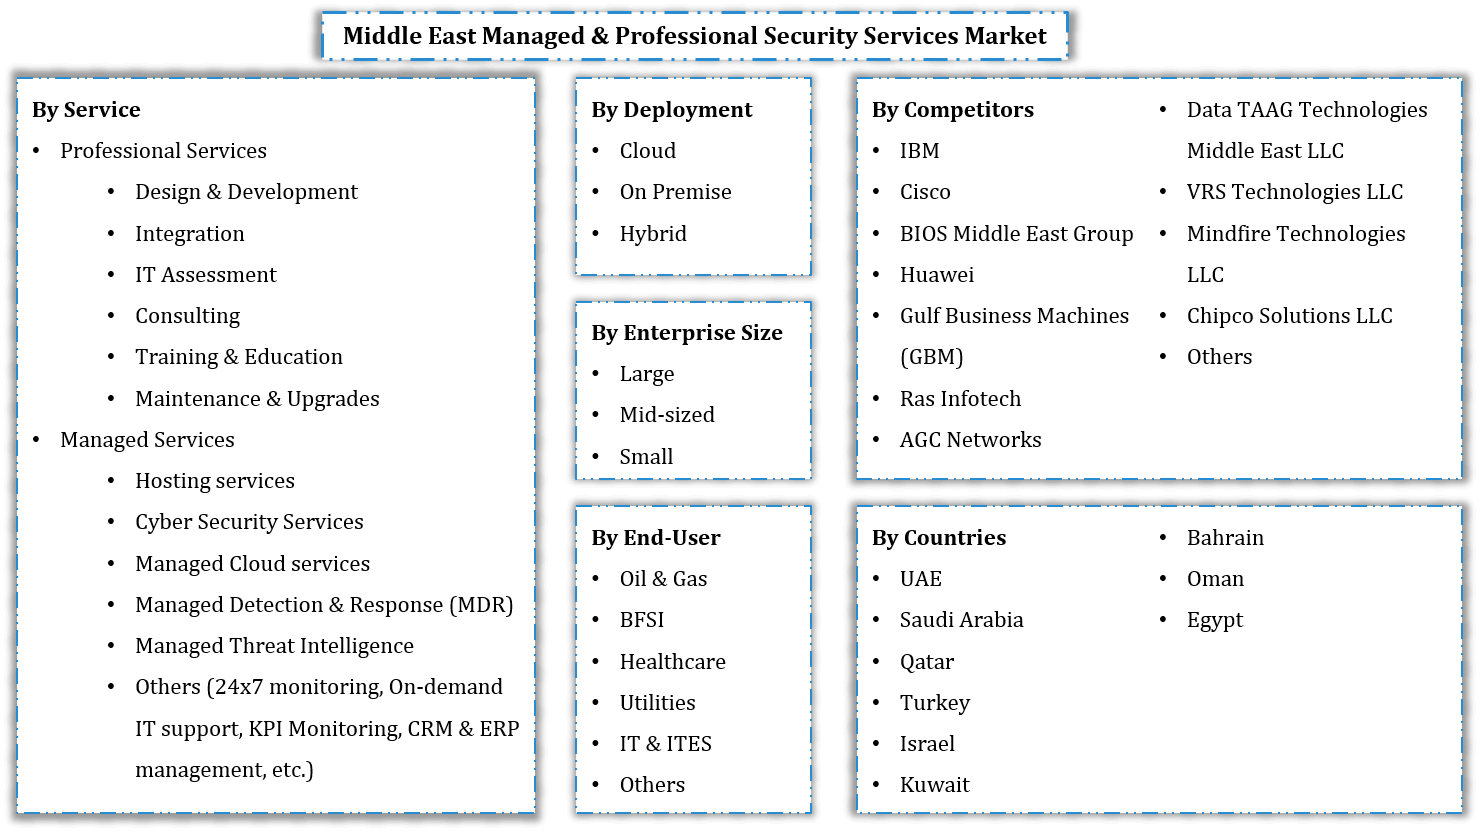 Middle East Managed & Professional Security Services Segmentation